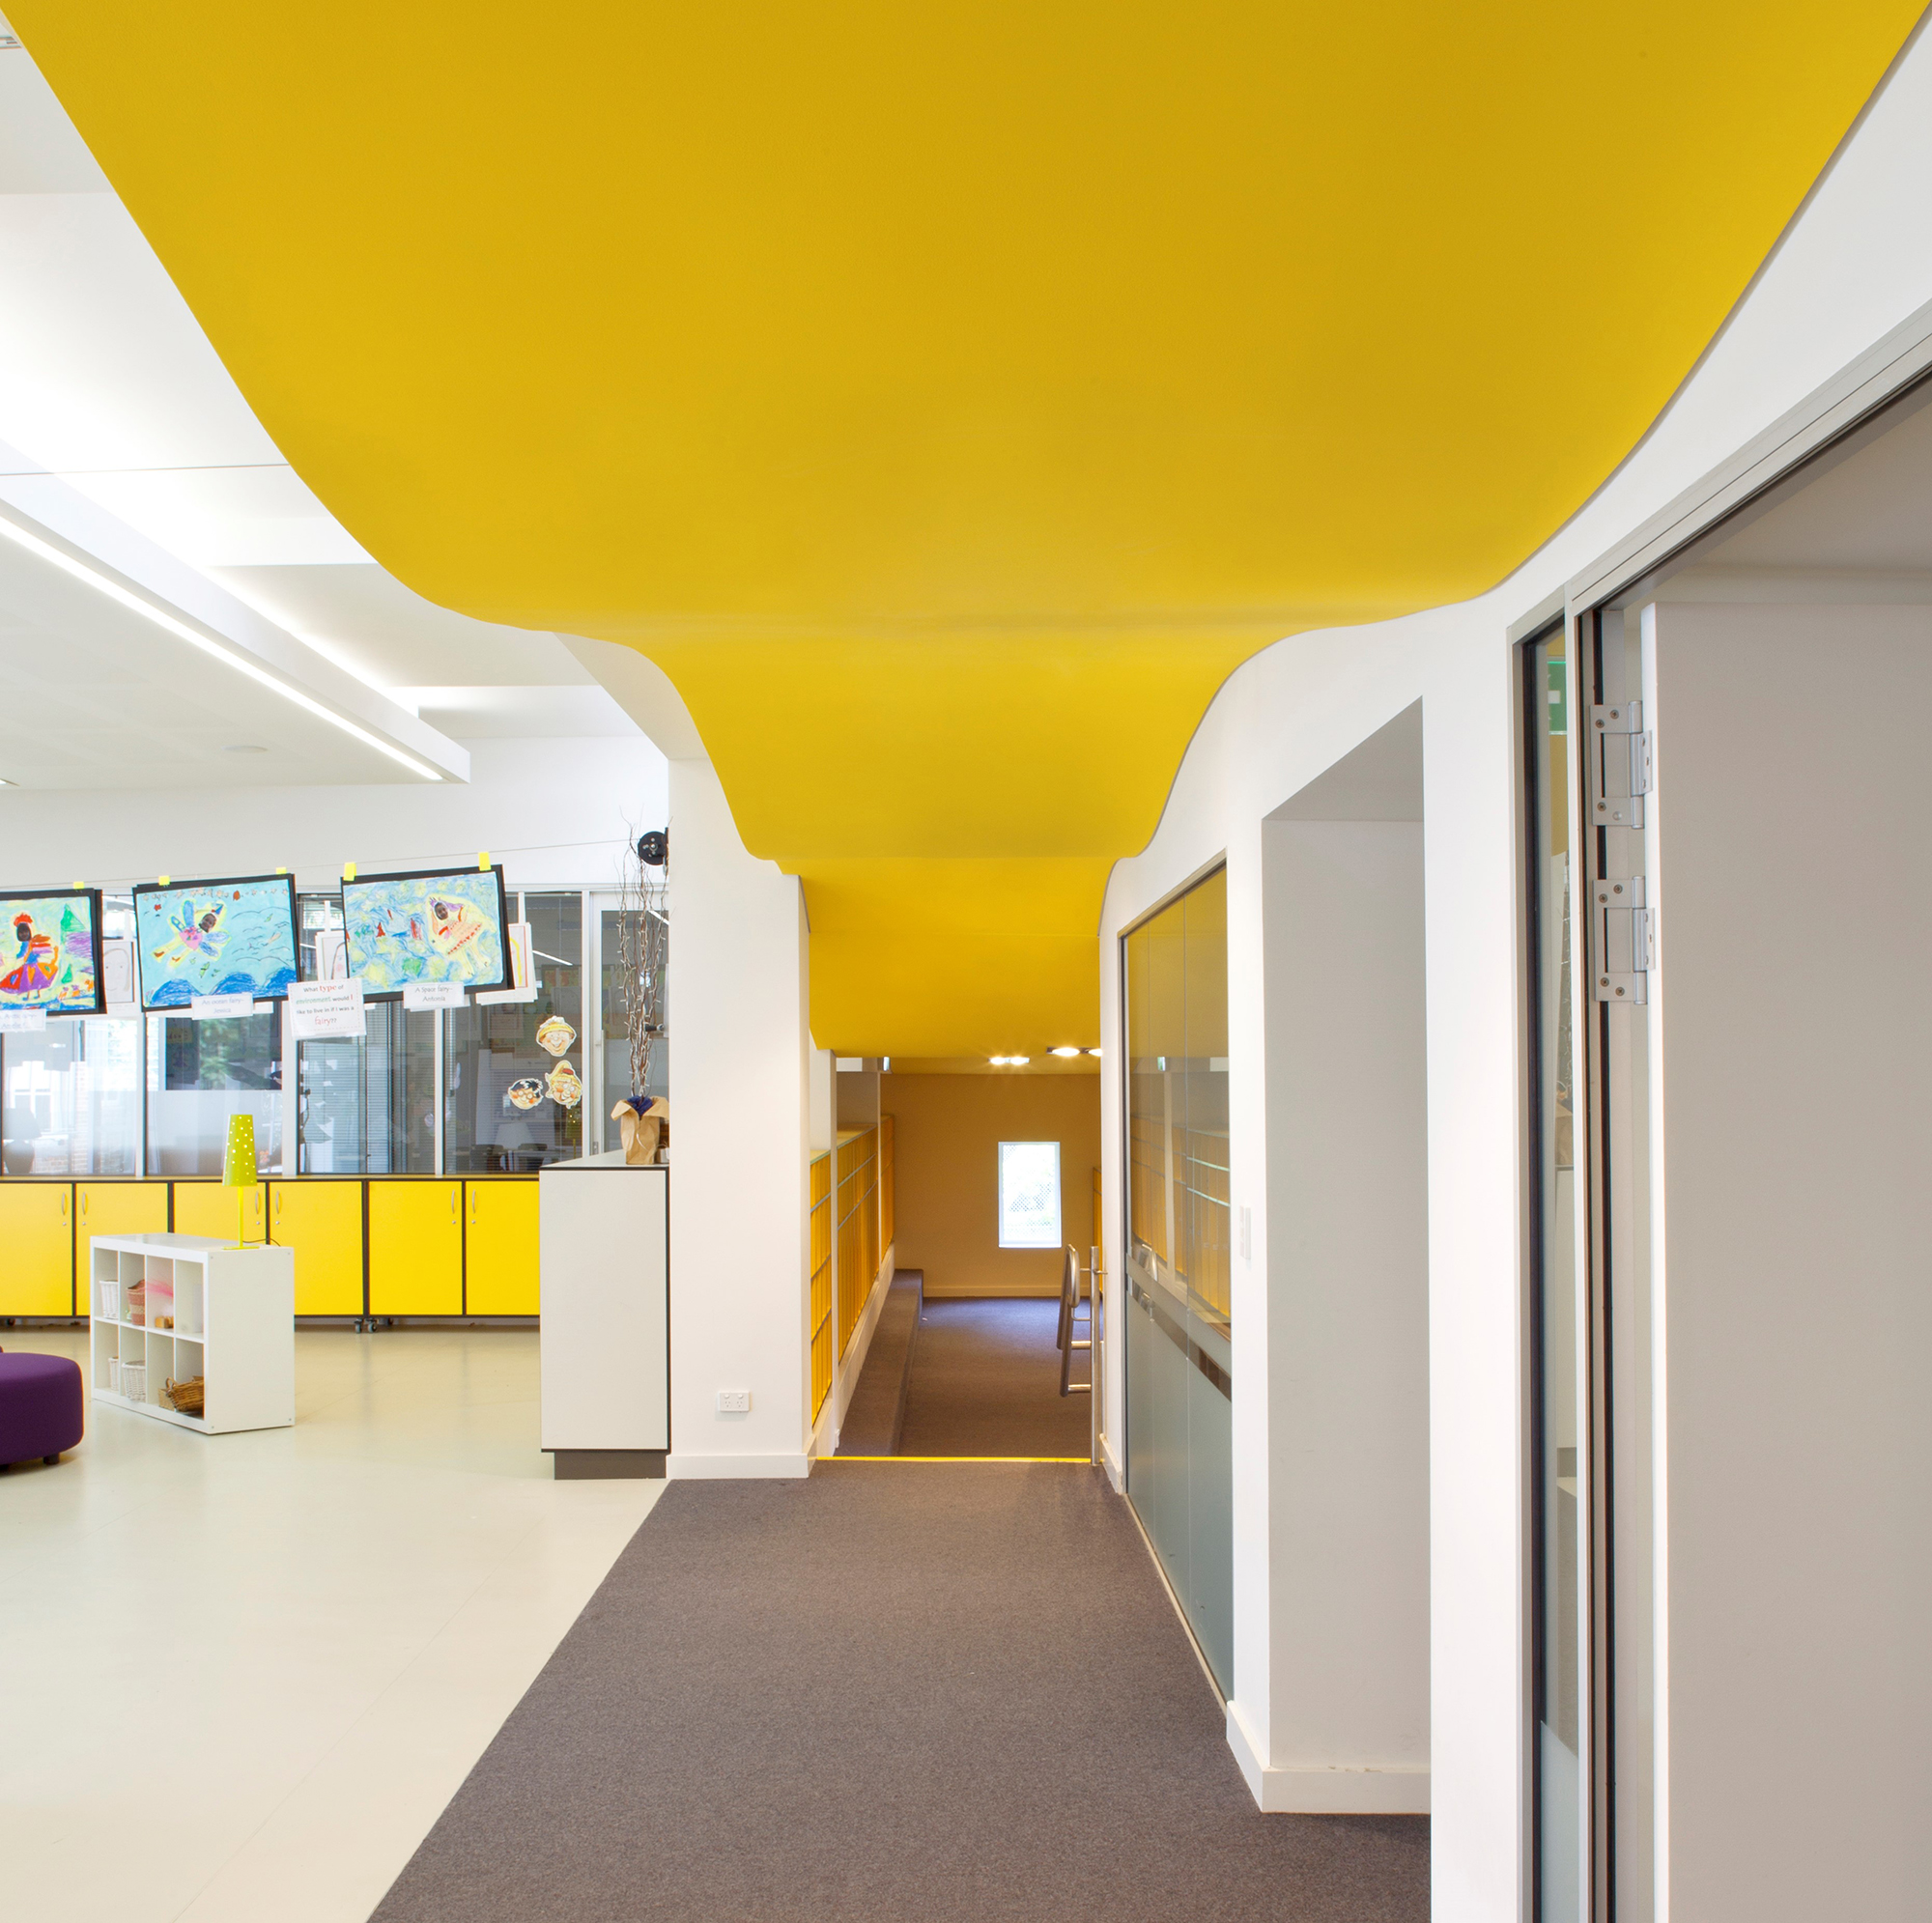 Wenona Woodstock Infants School Interior Design Hallway and Architectural Curved Yellow Roof – Gardner Wetherill GW 4